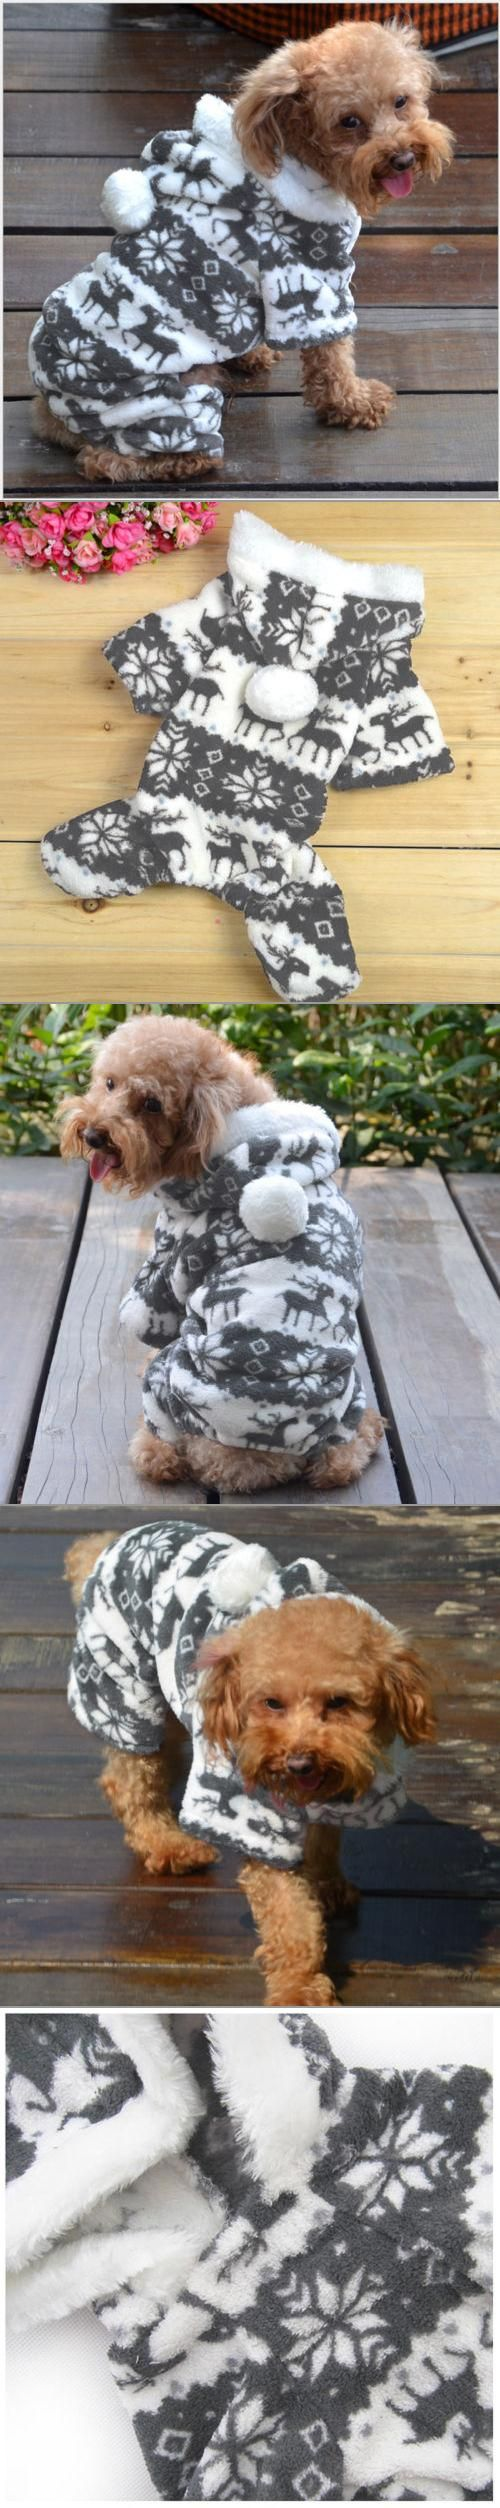 "Don't judge. My havanese, Charlie, actually needs this. I don't care if people say ""he's just a dog"". They need protection in the winter when it gets cold. It's factual. Charlie will not get sick."